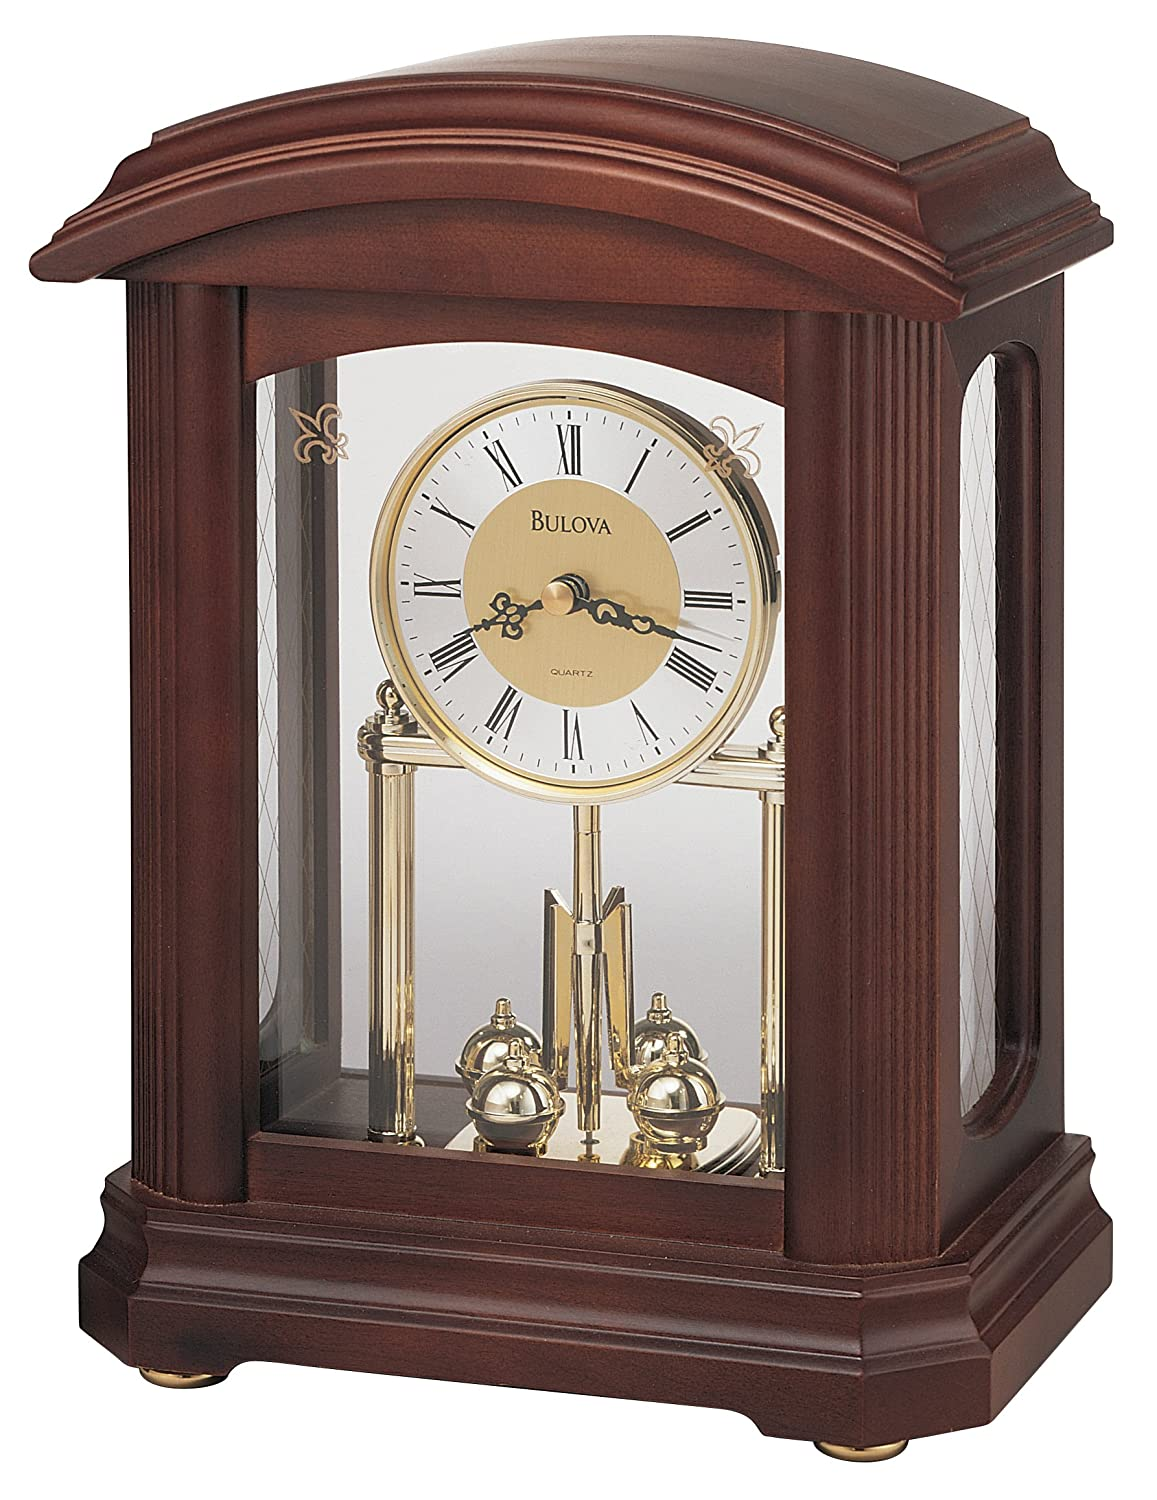 Bulova B1848 Nordale Clock, Walnut Finish Bulova (Clocks)